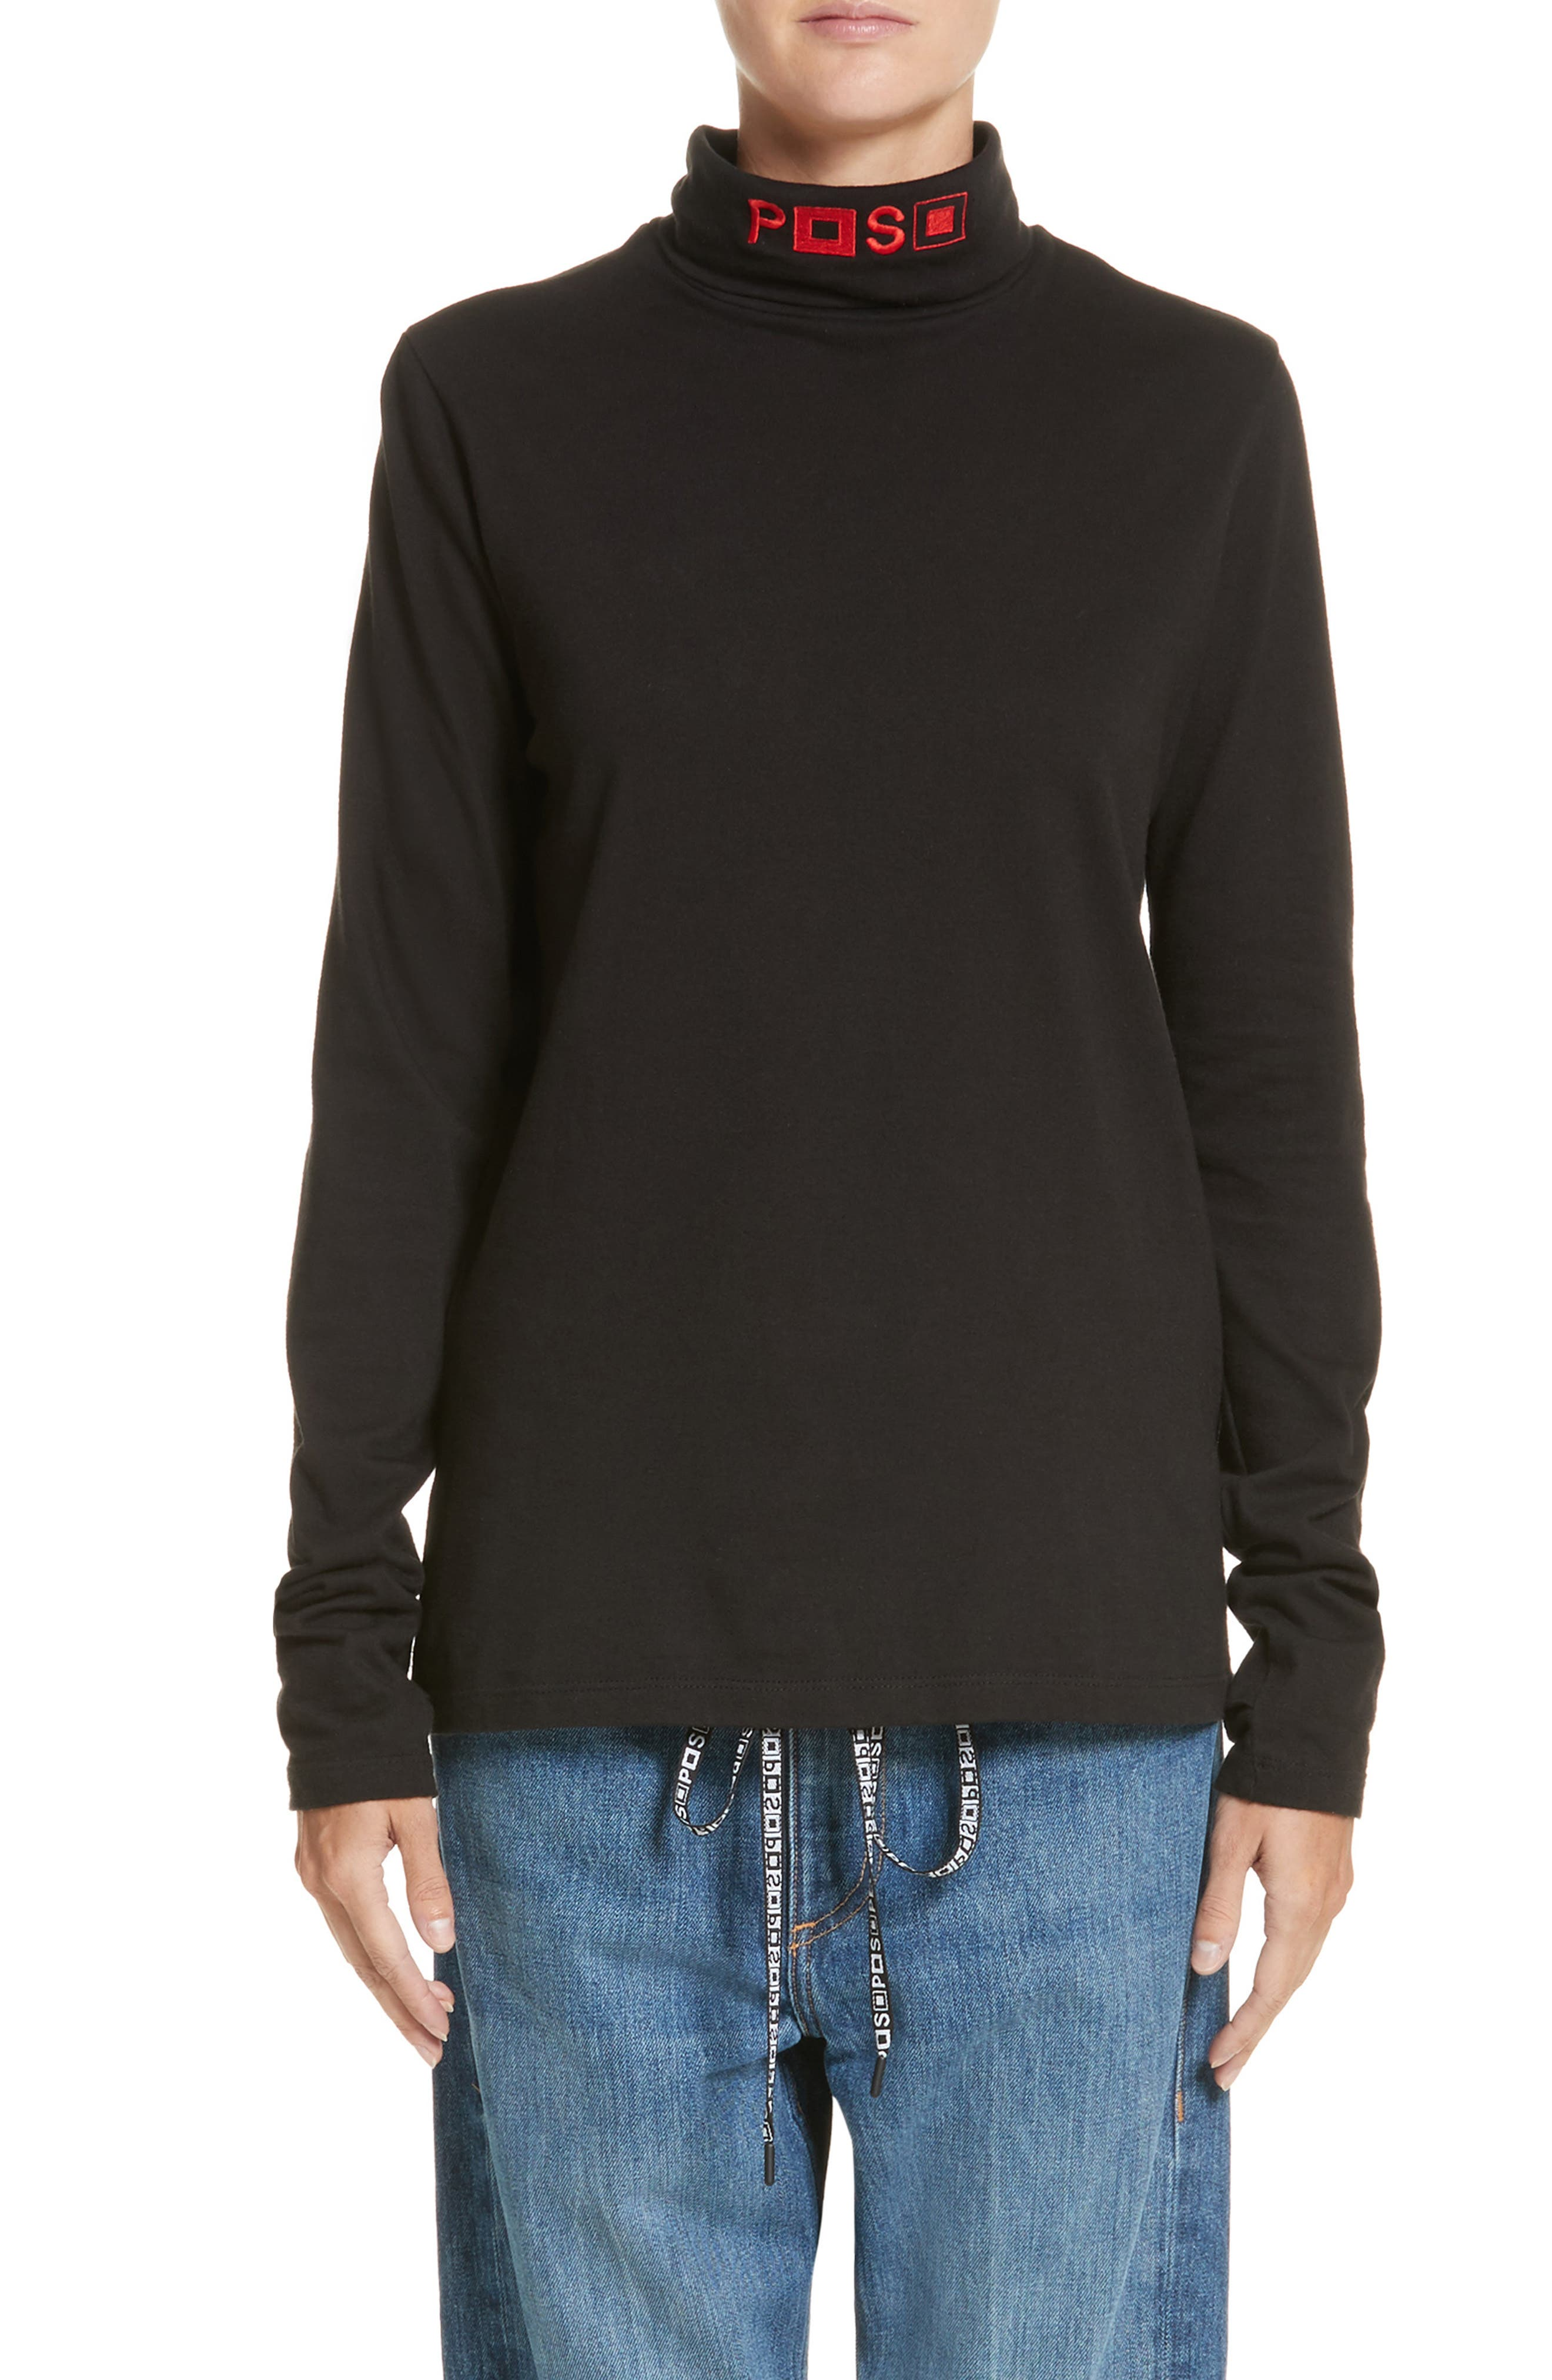 Alternate Image 1 Selected - Proenza Schouler PSWL Embroidered Jersey Turtleneck